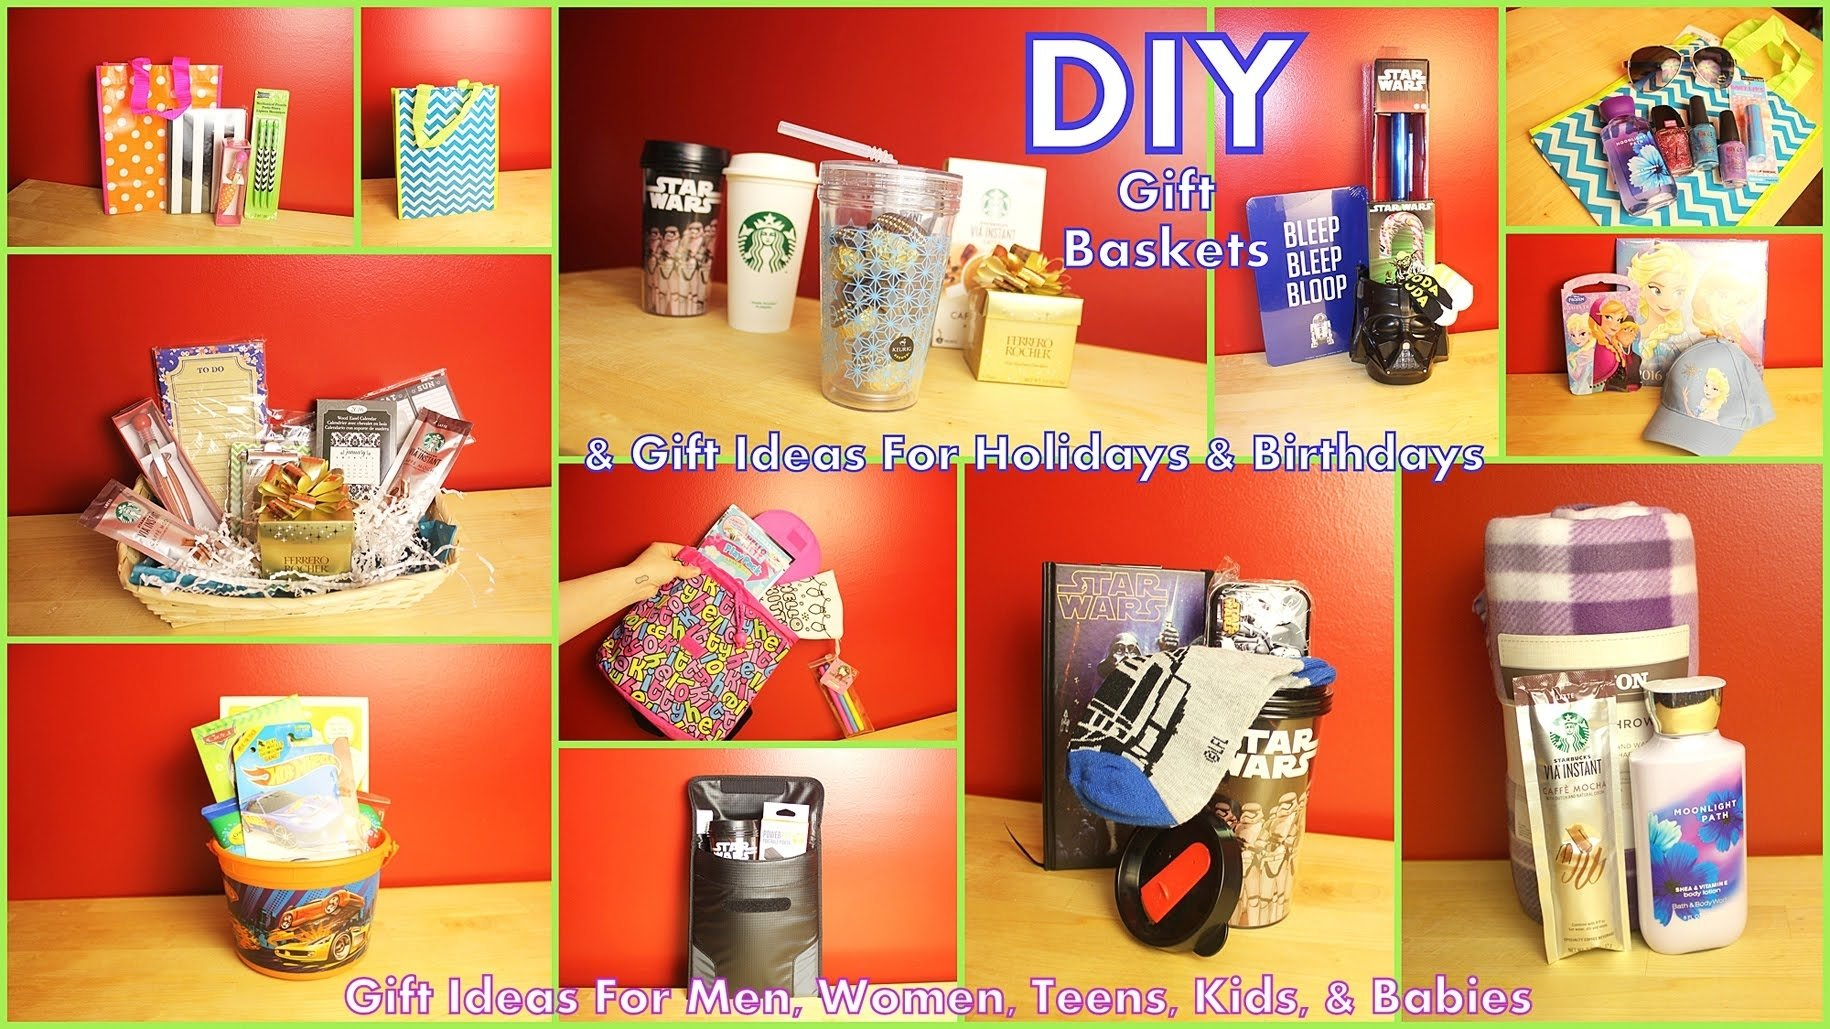 diy gift baskets & gift ideas - how to assemble - for men women kids